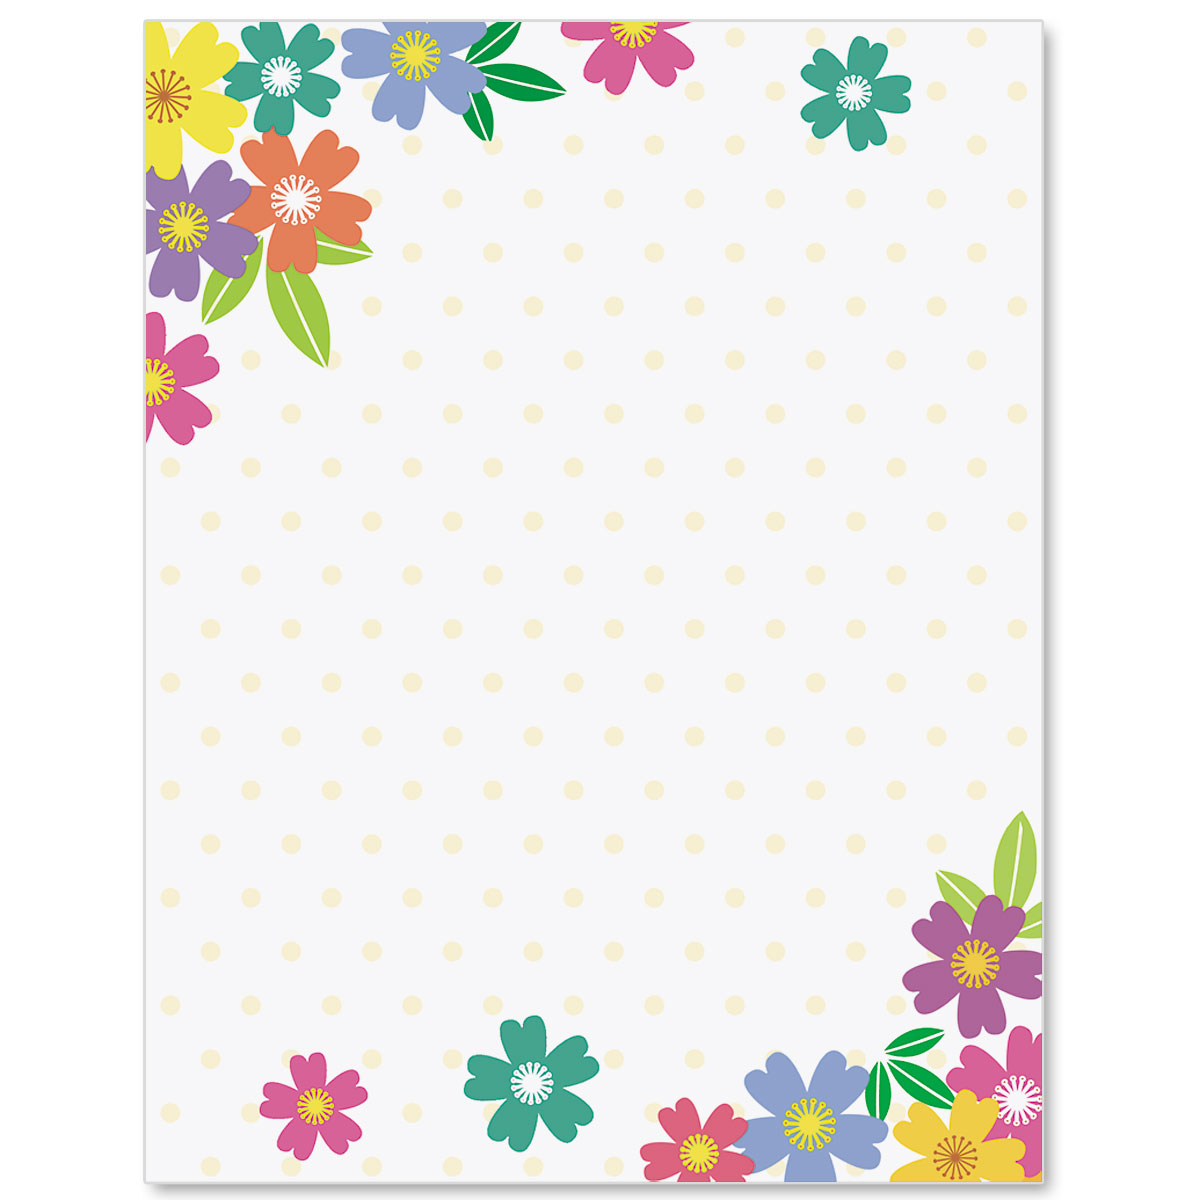 Wild flowers border papers paperdirects wild flowers border papers mightylinksfo